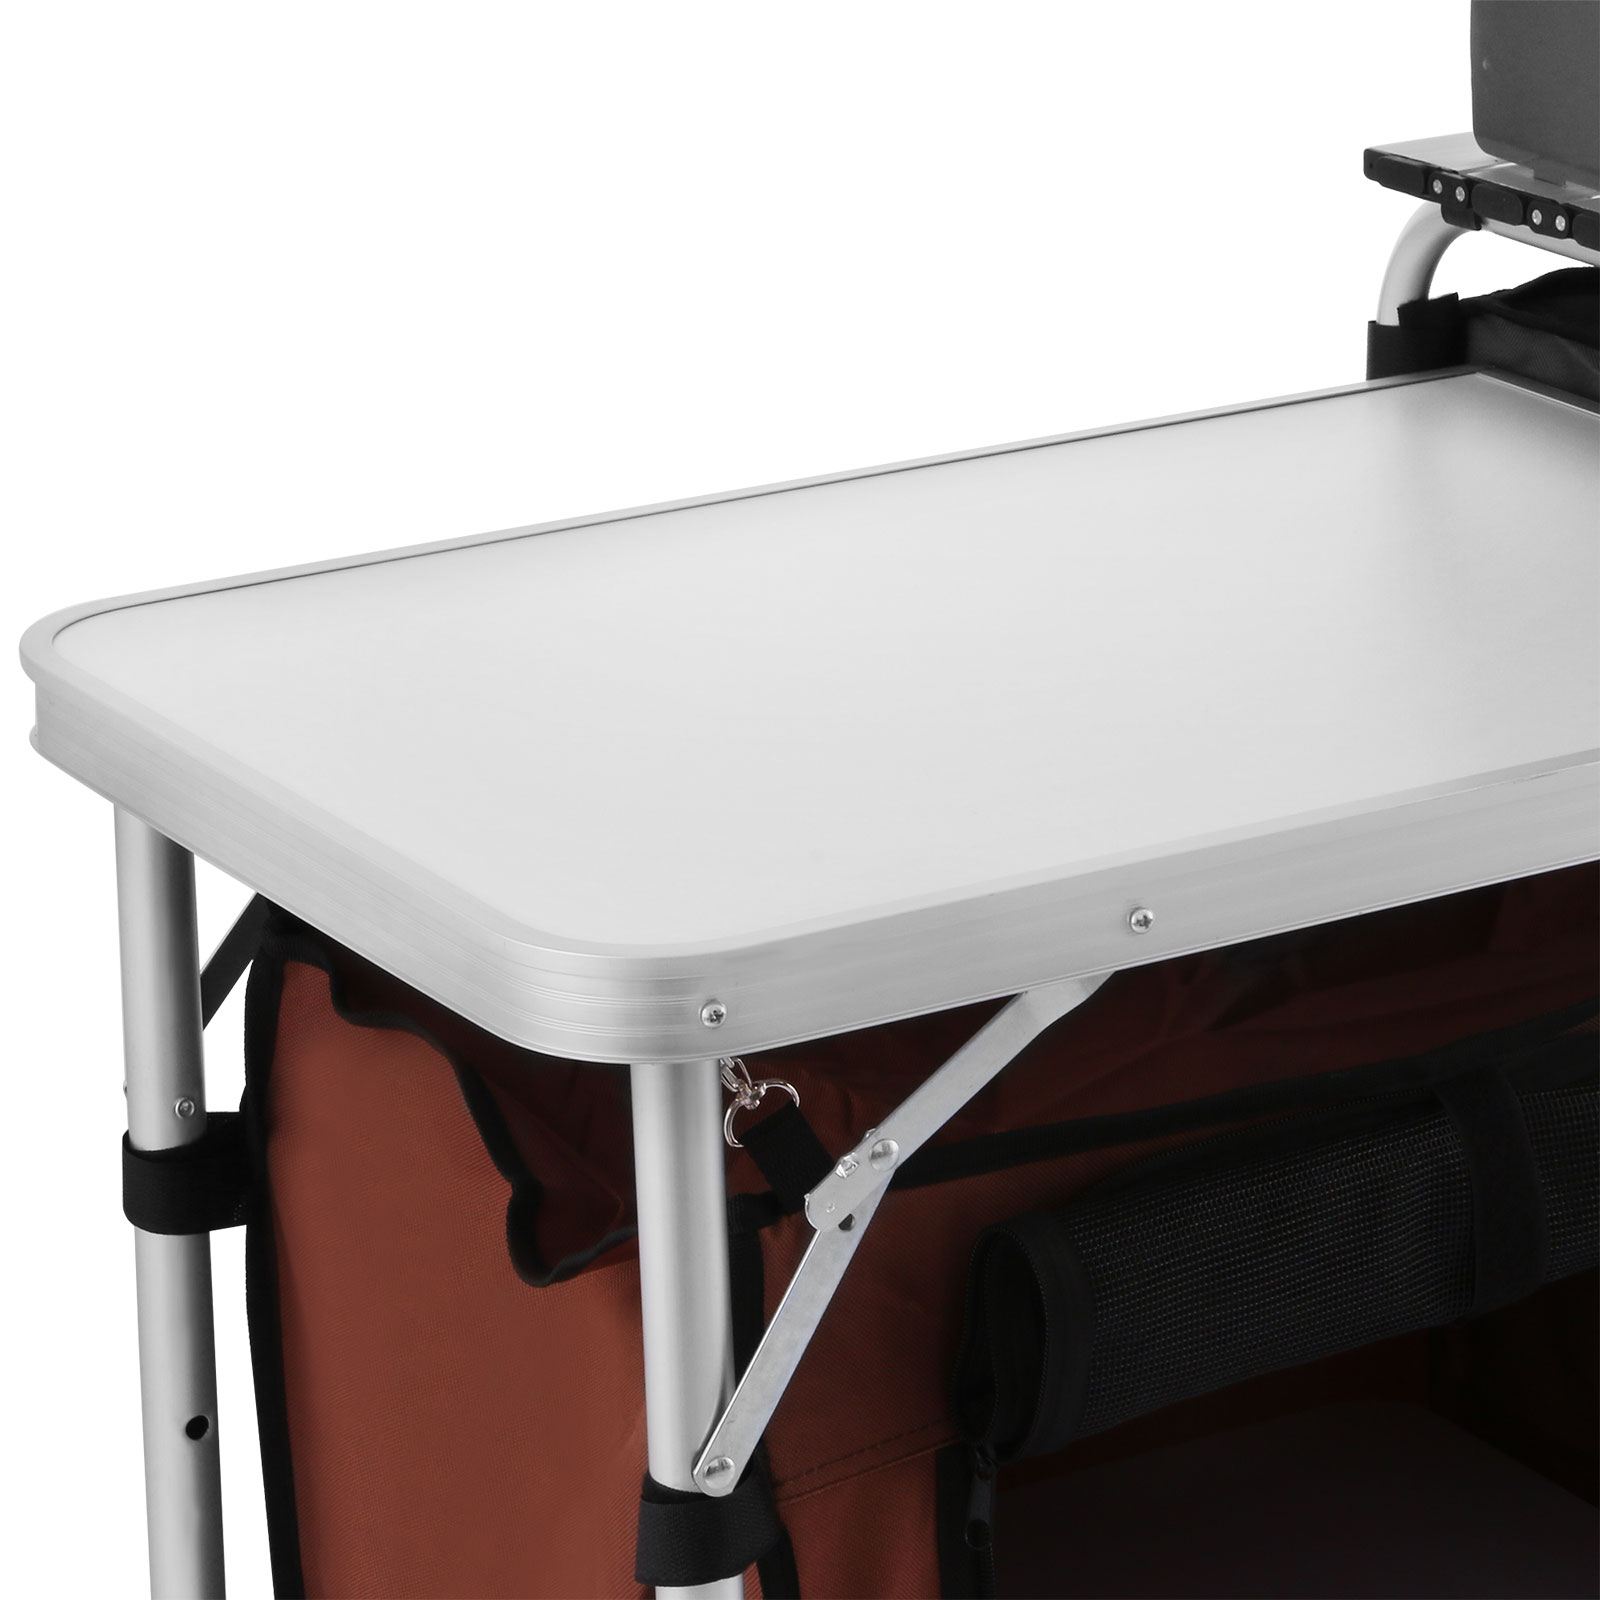 Camping kitchen cooking table food prep food storage adjustable folding 241364323514 ebay - Table retractable cuisine ...